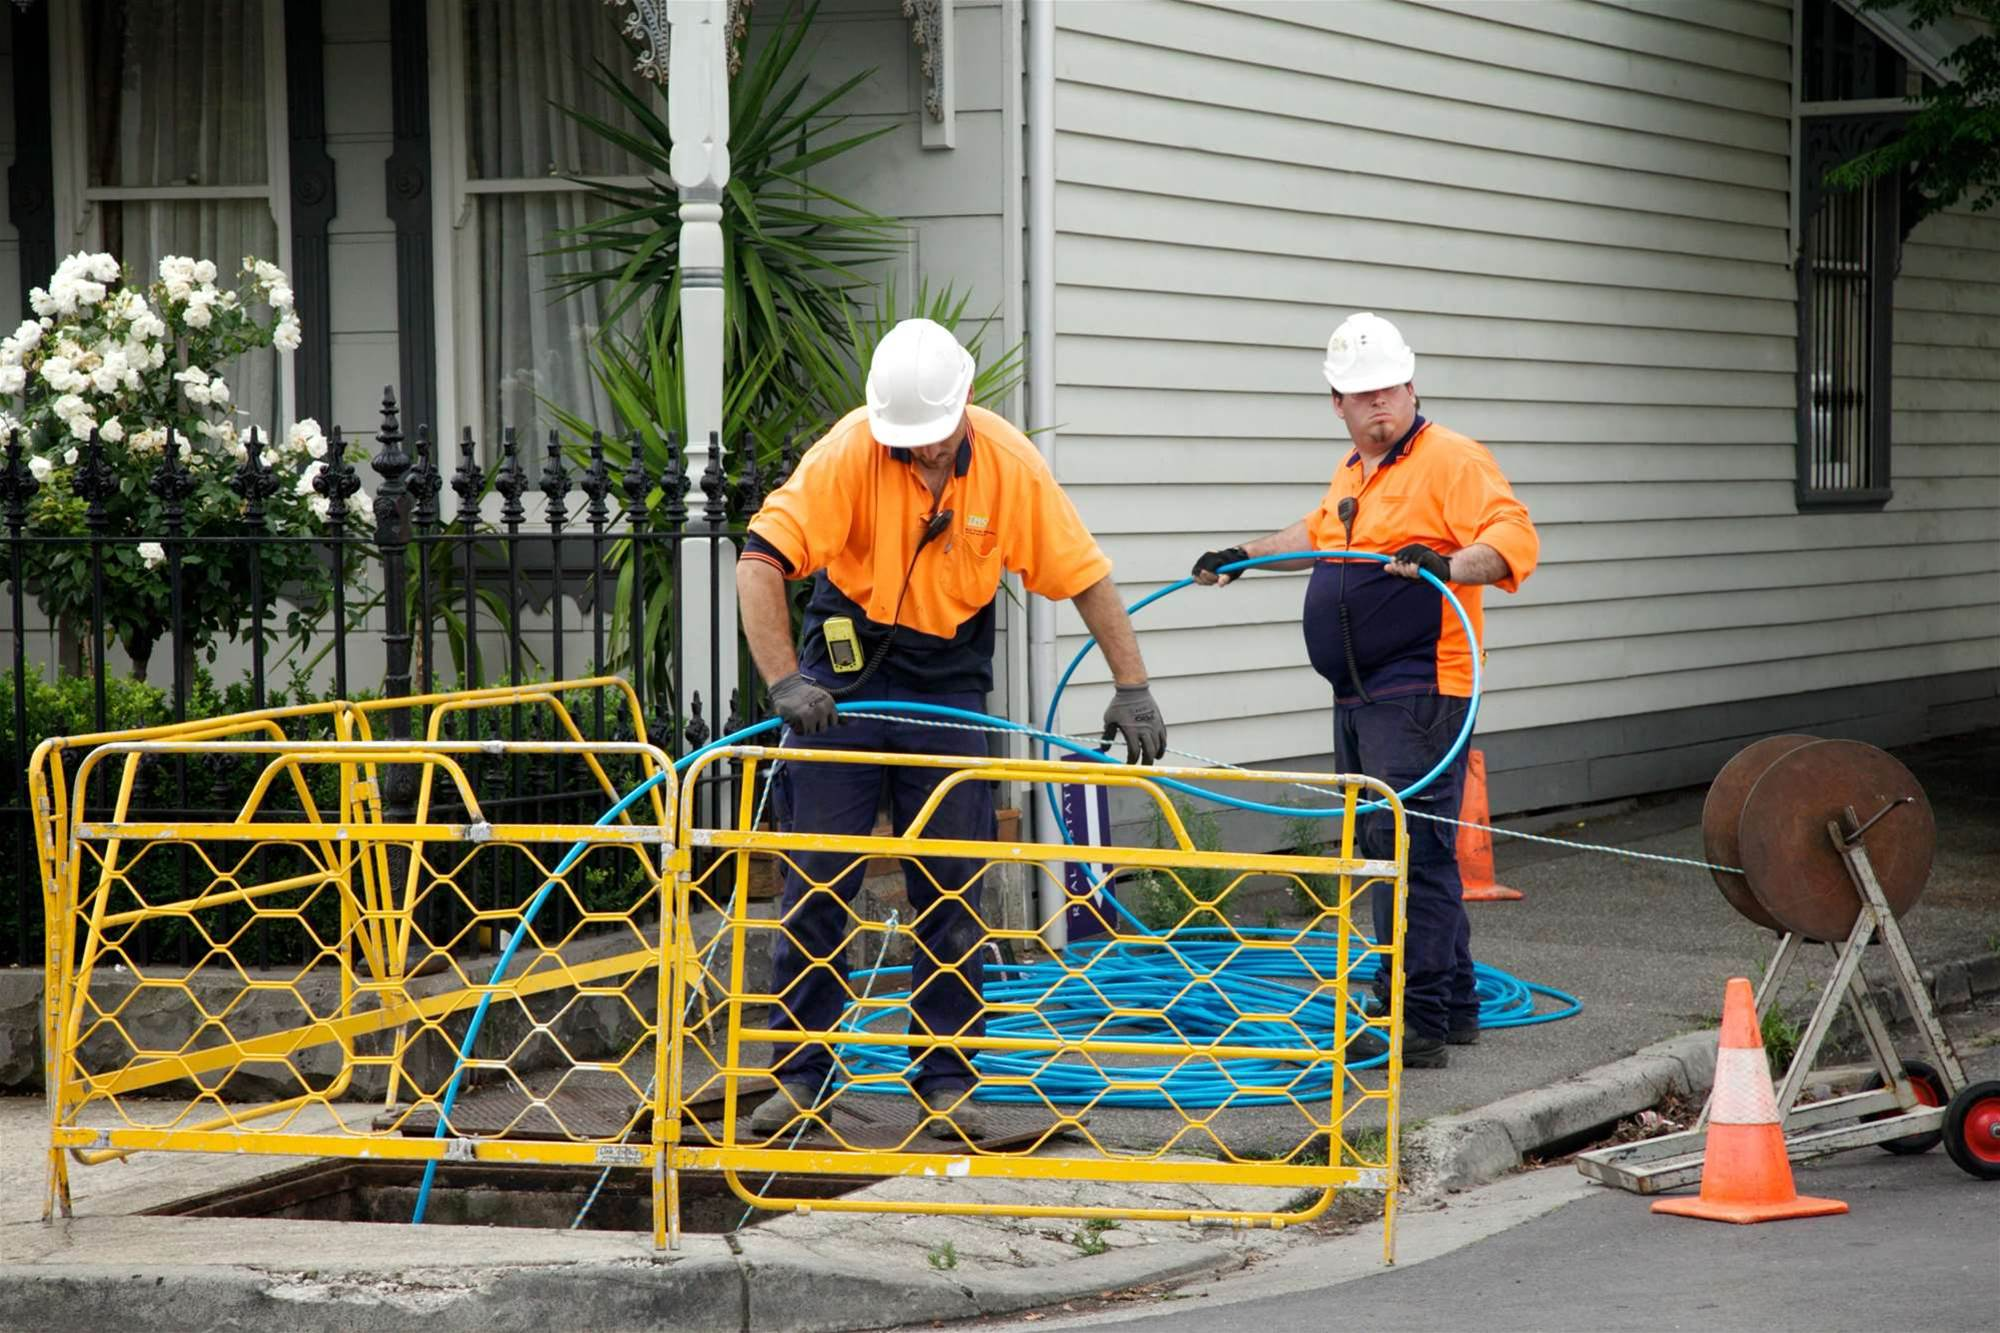 Optus outs trial NBN pricing